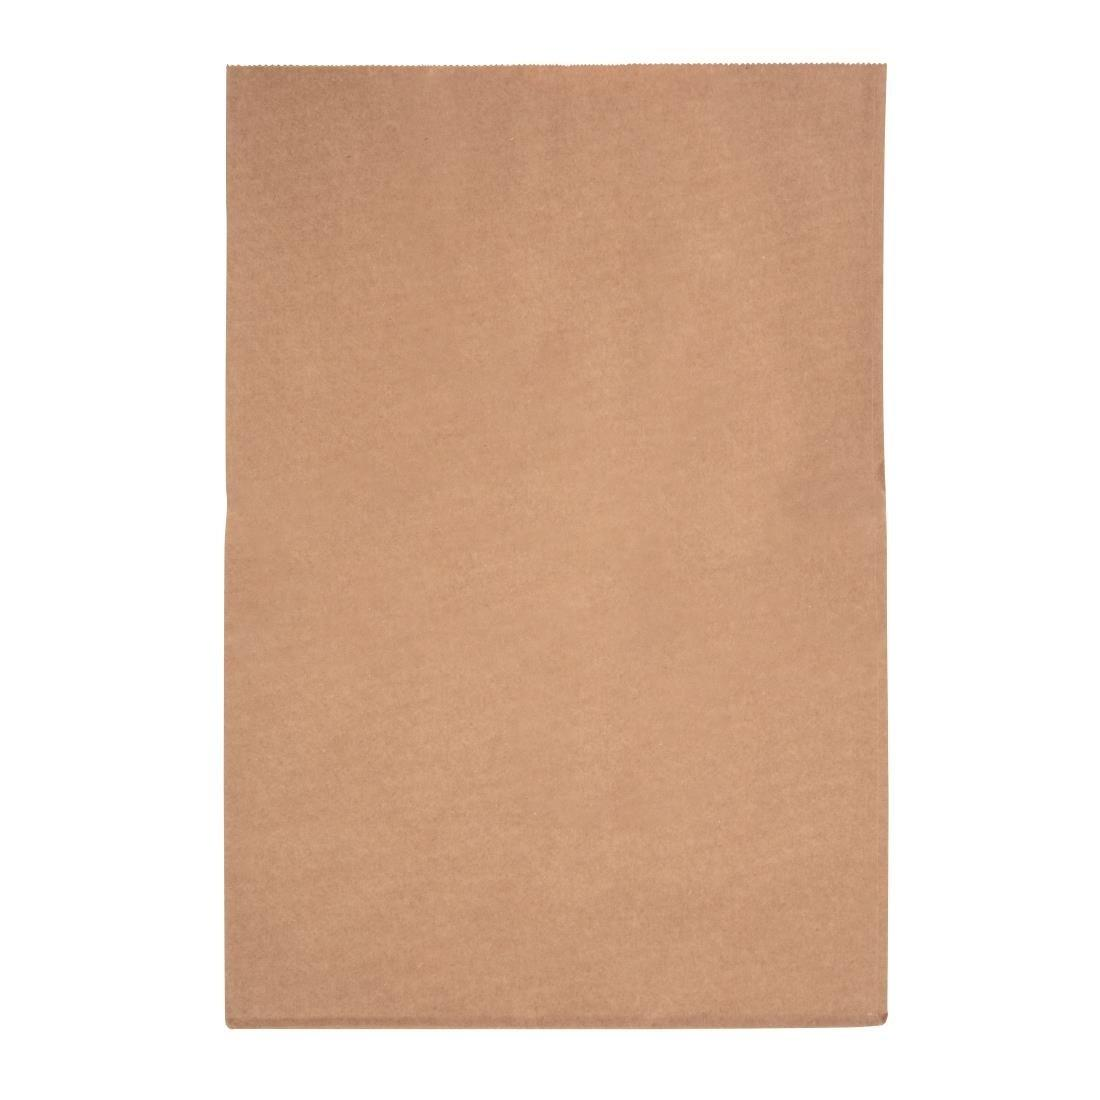 "Fiesta Green Biodegradable Kraft Grab Bags 431 x 304mm 17"" x 12"" Compostable Recyclable - Pack of 500 - FC875"